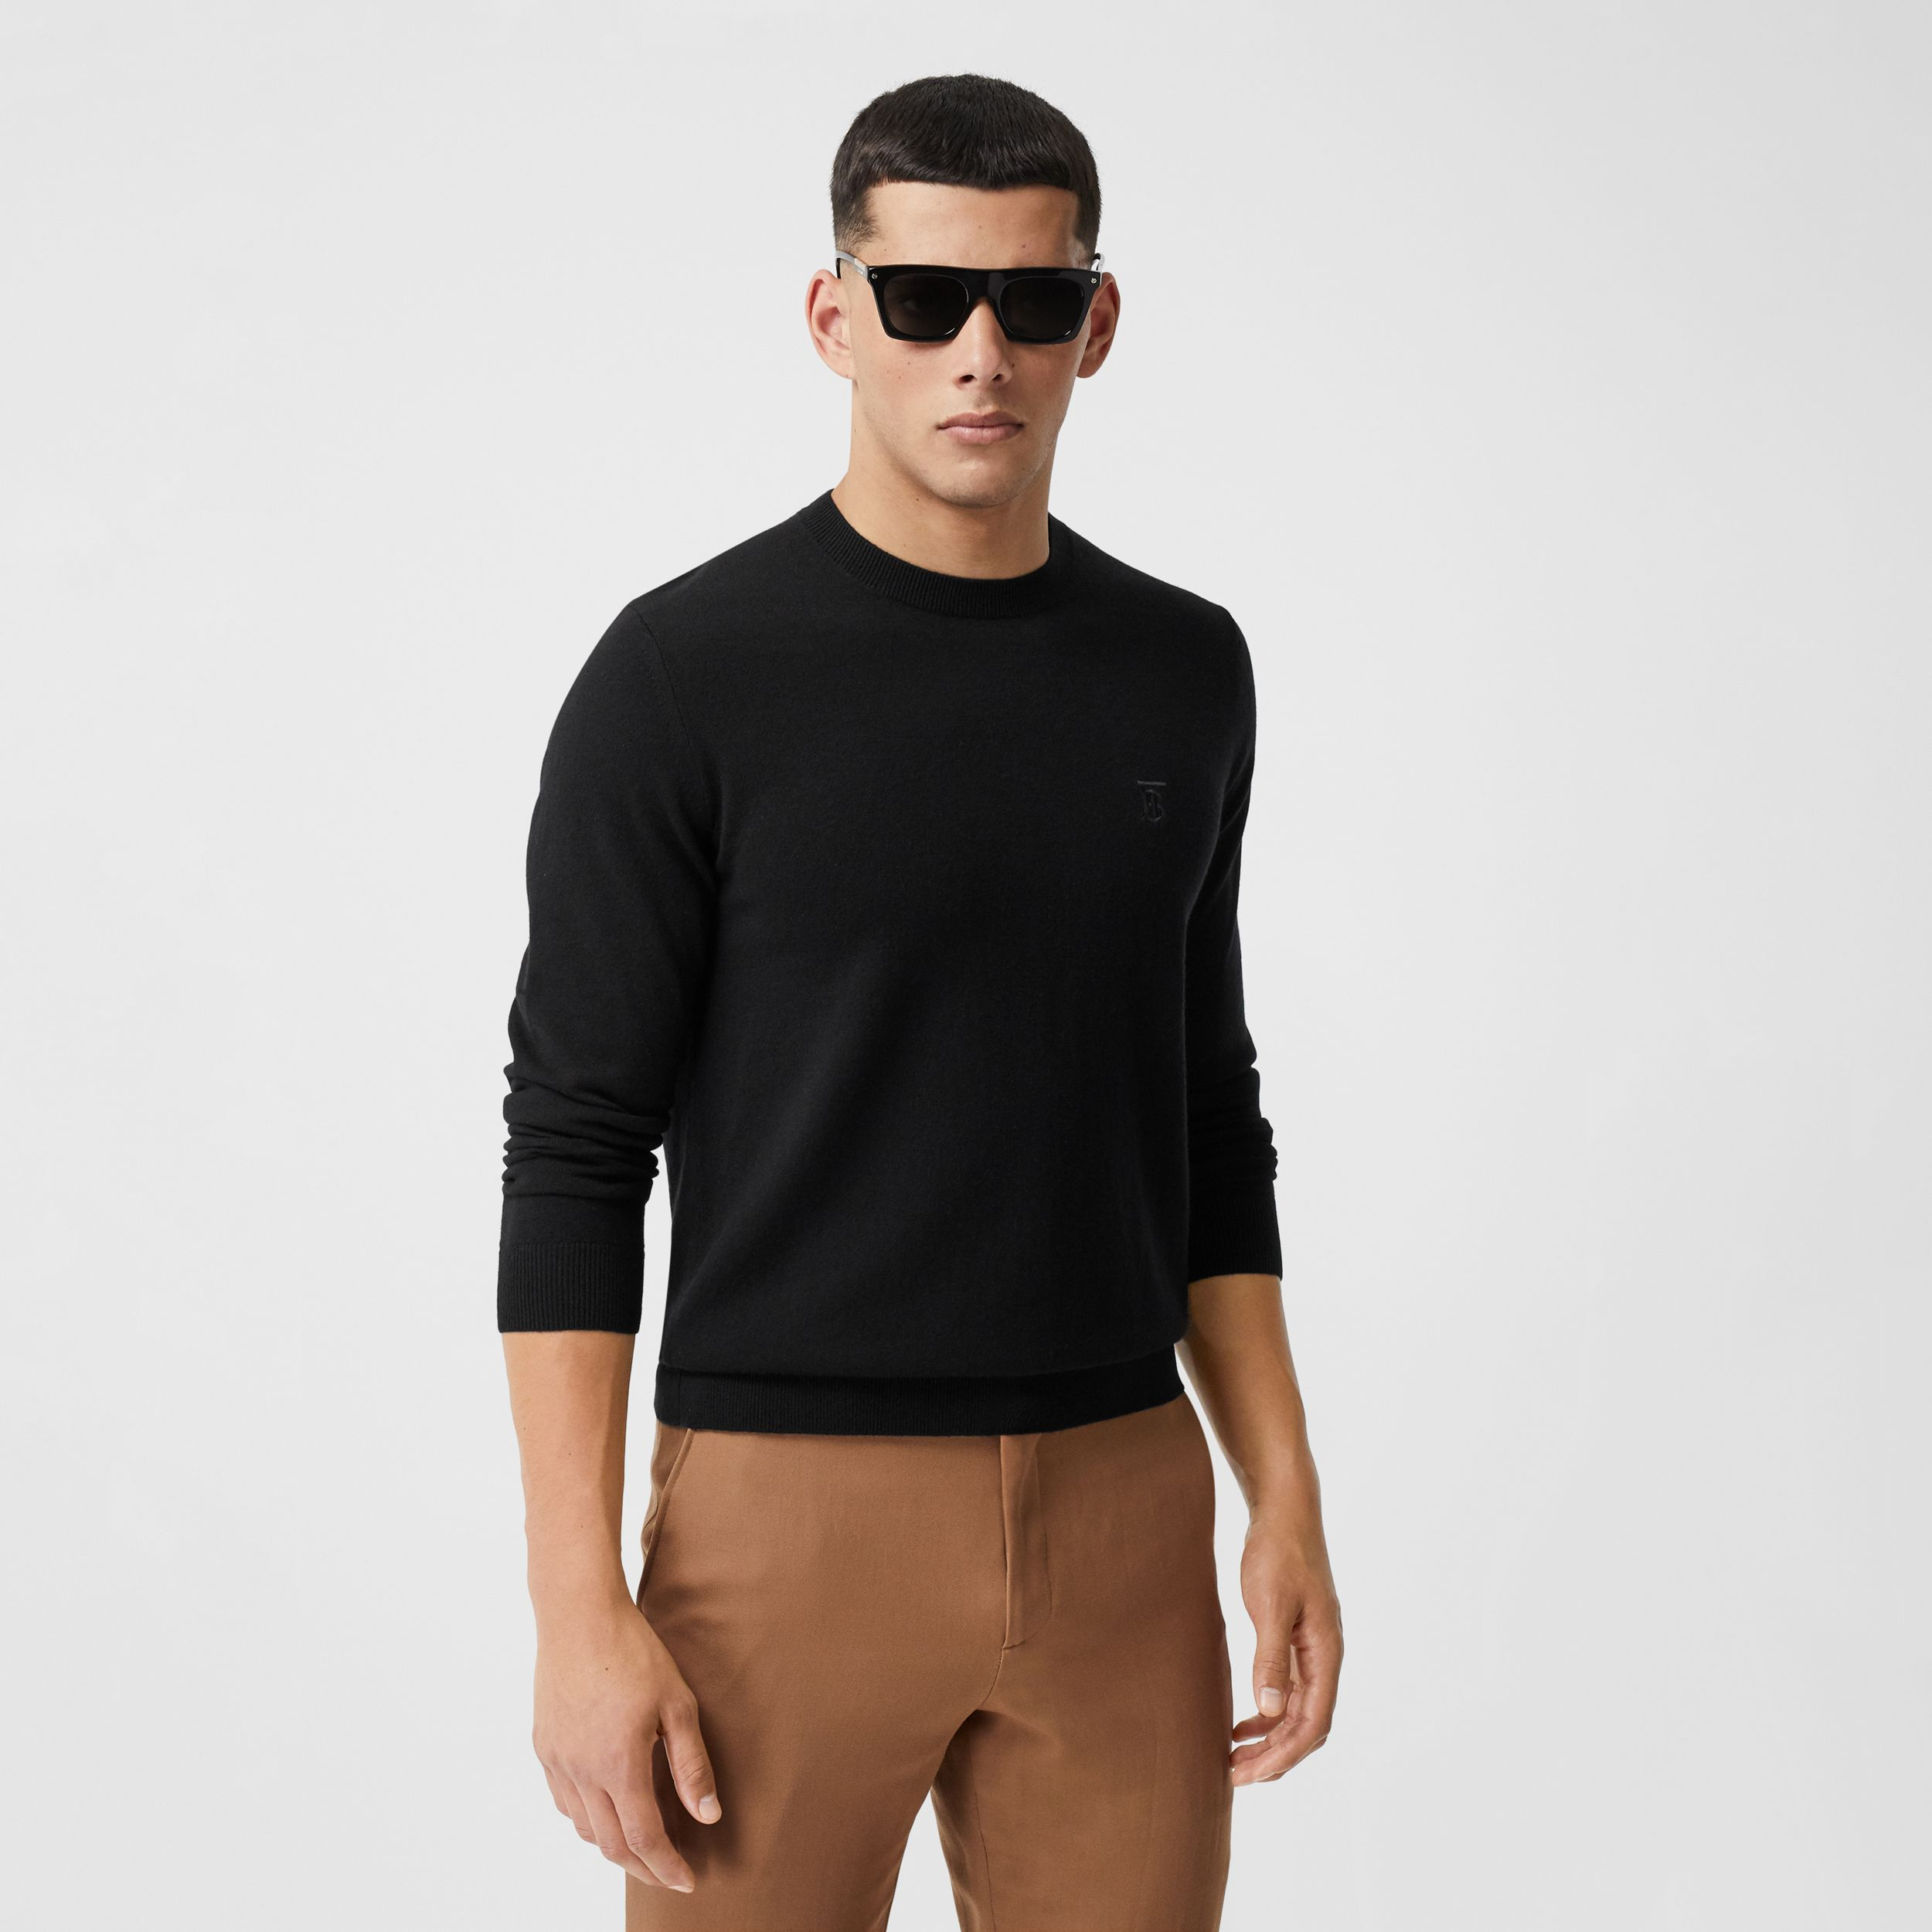 Monogram Motif Cashmere Sweater in Black - Men | Burberry - 1